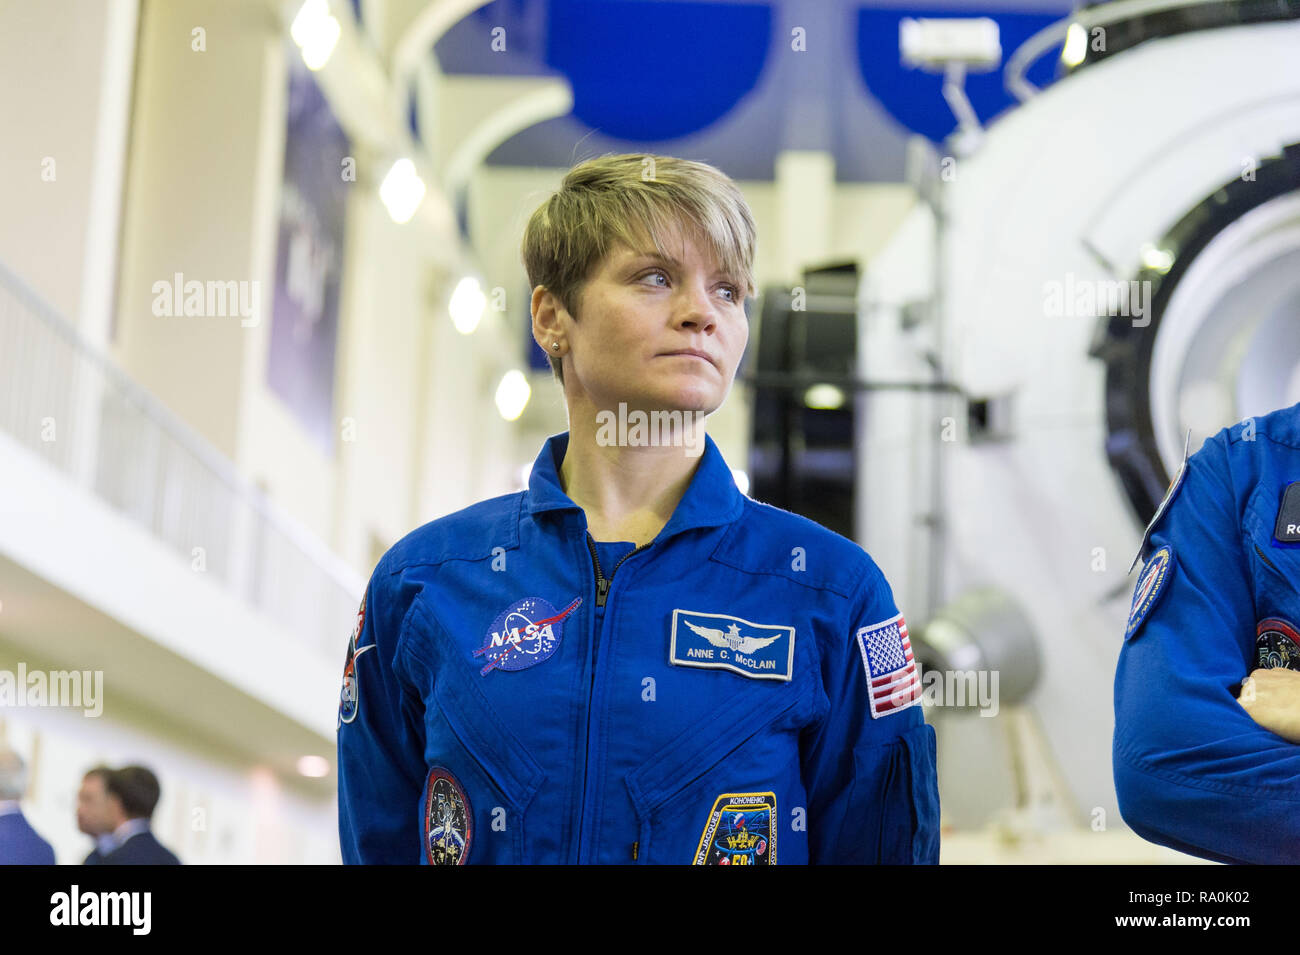 International Space Station Expedition 58 crew member Anne McClain of NASA listens to a reporters questions at the Gagarin Cosmonaut Training Center November 13, 2018 in Star City, Russia. Expedition 58 crew are scheduled to launch December 3rd from the Baikonur Cosmodrome in Kazakhstan for a six-and-a-half month mission on the International Space Station. - Stock Image